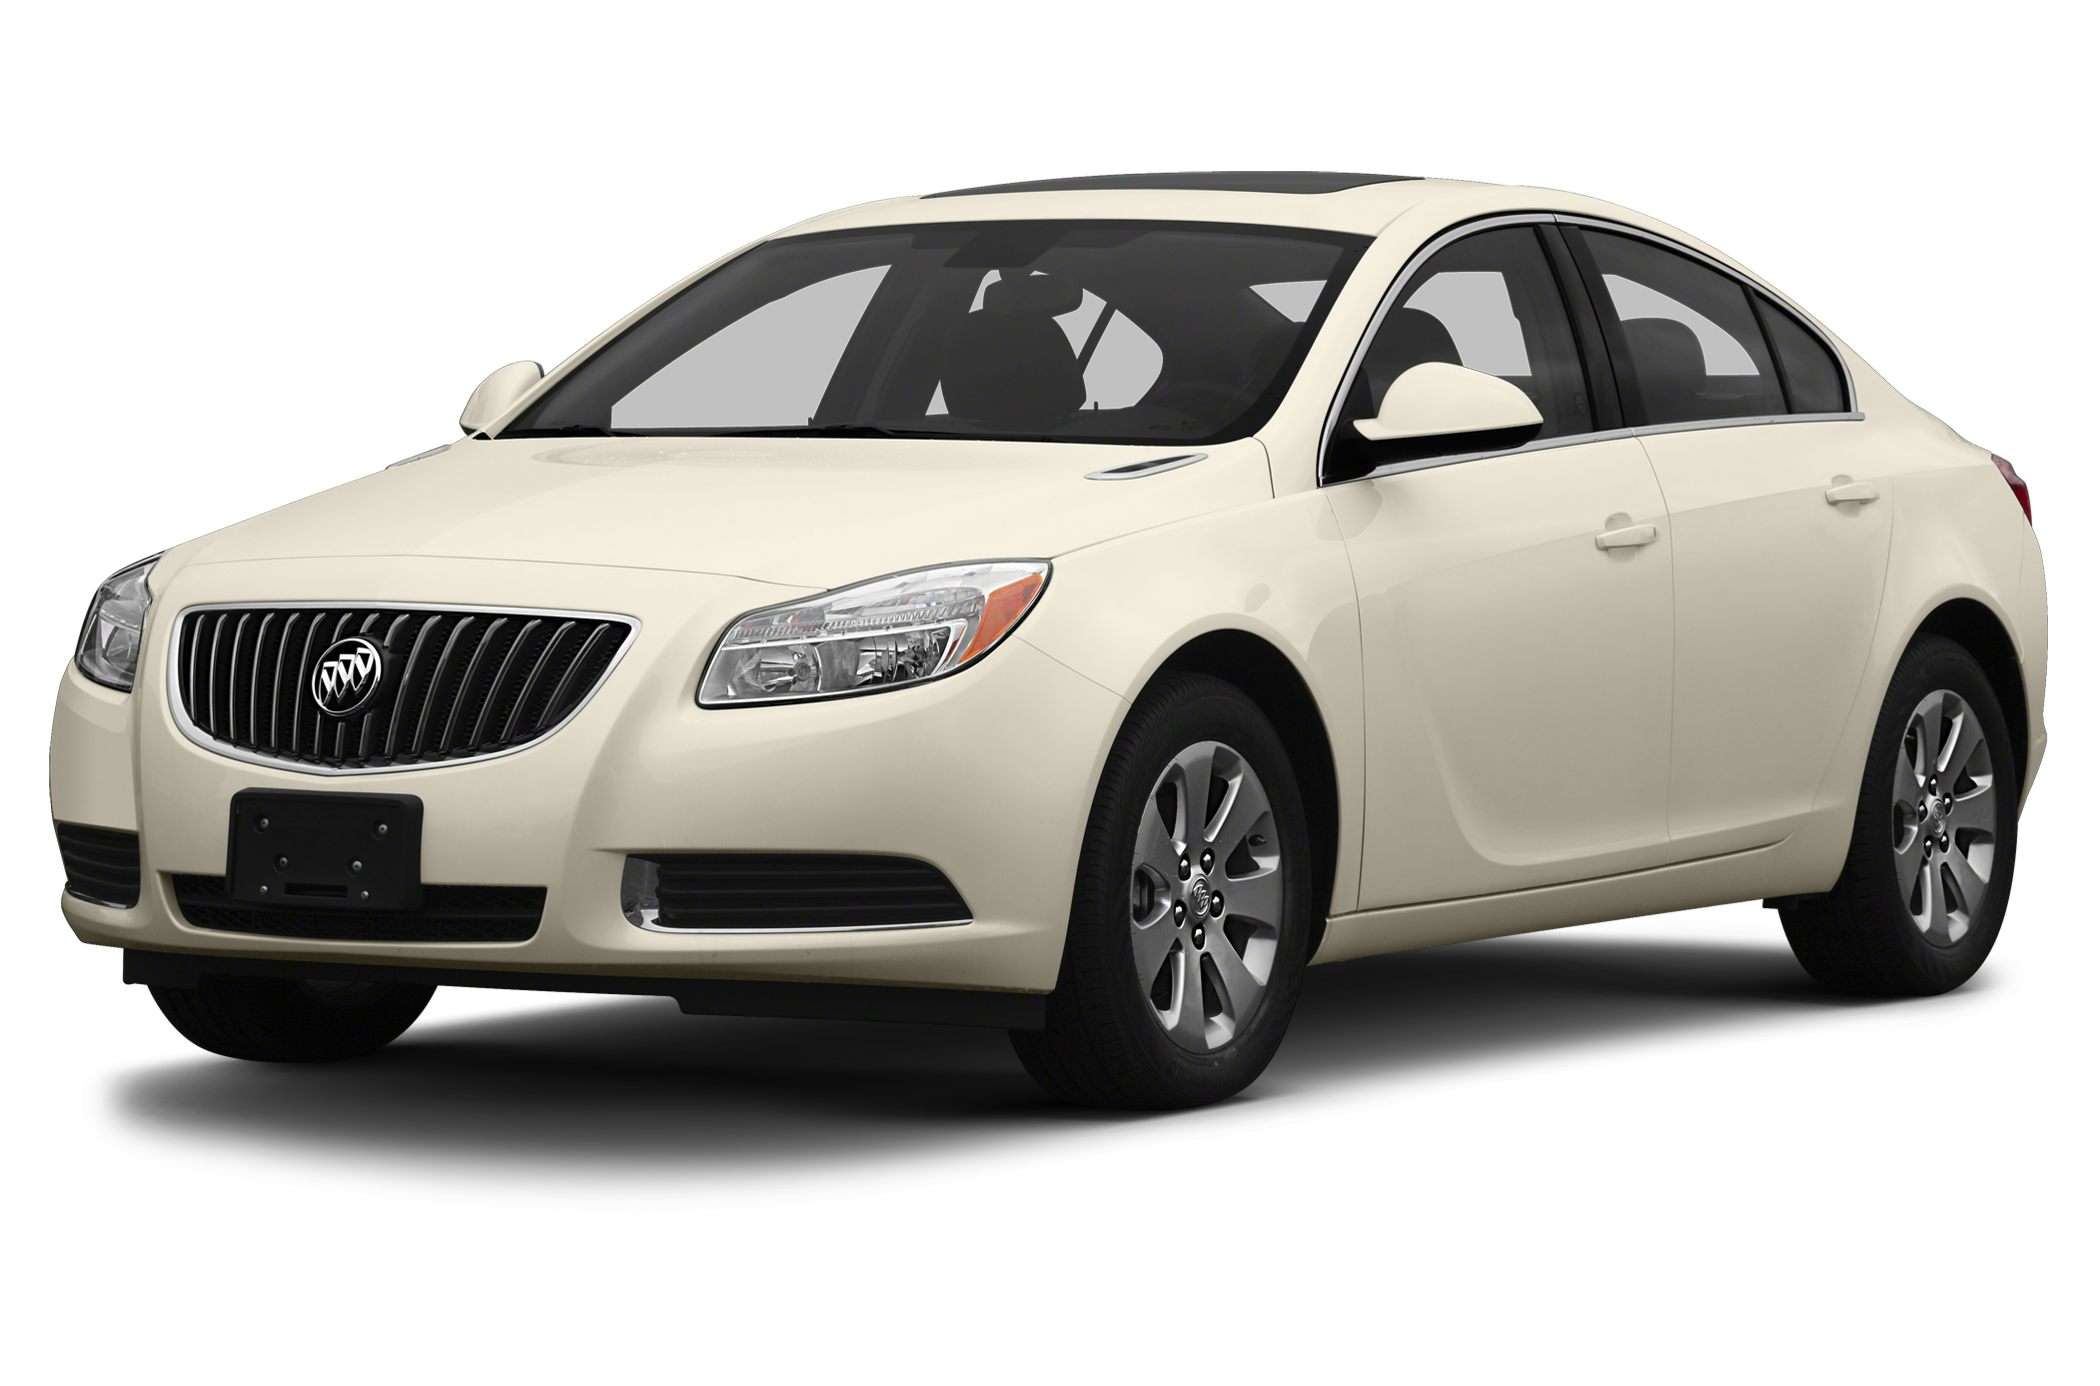 2013 Buick Regal Turbo - Premium 1 DISCLAIMER We are excited to offer this vehicle to you but it